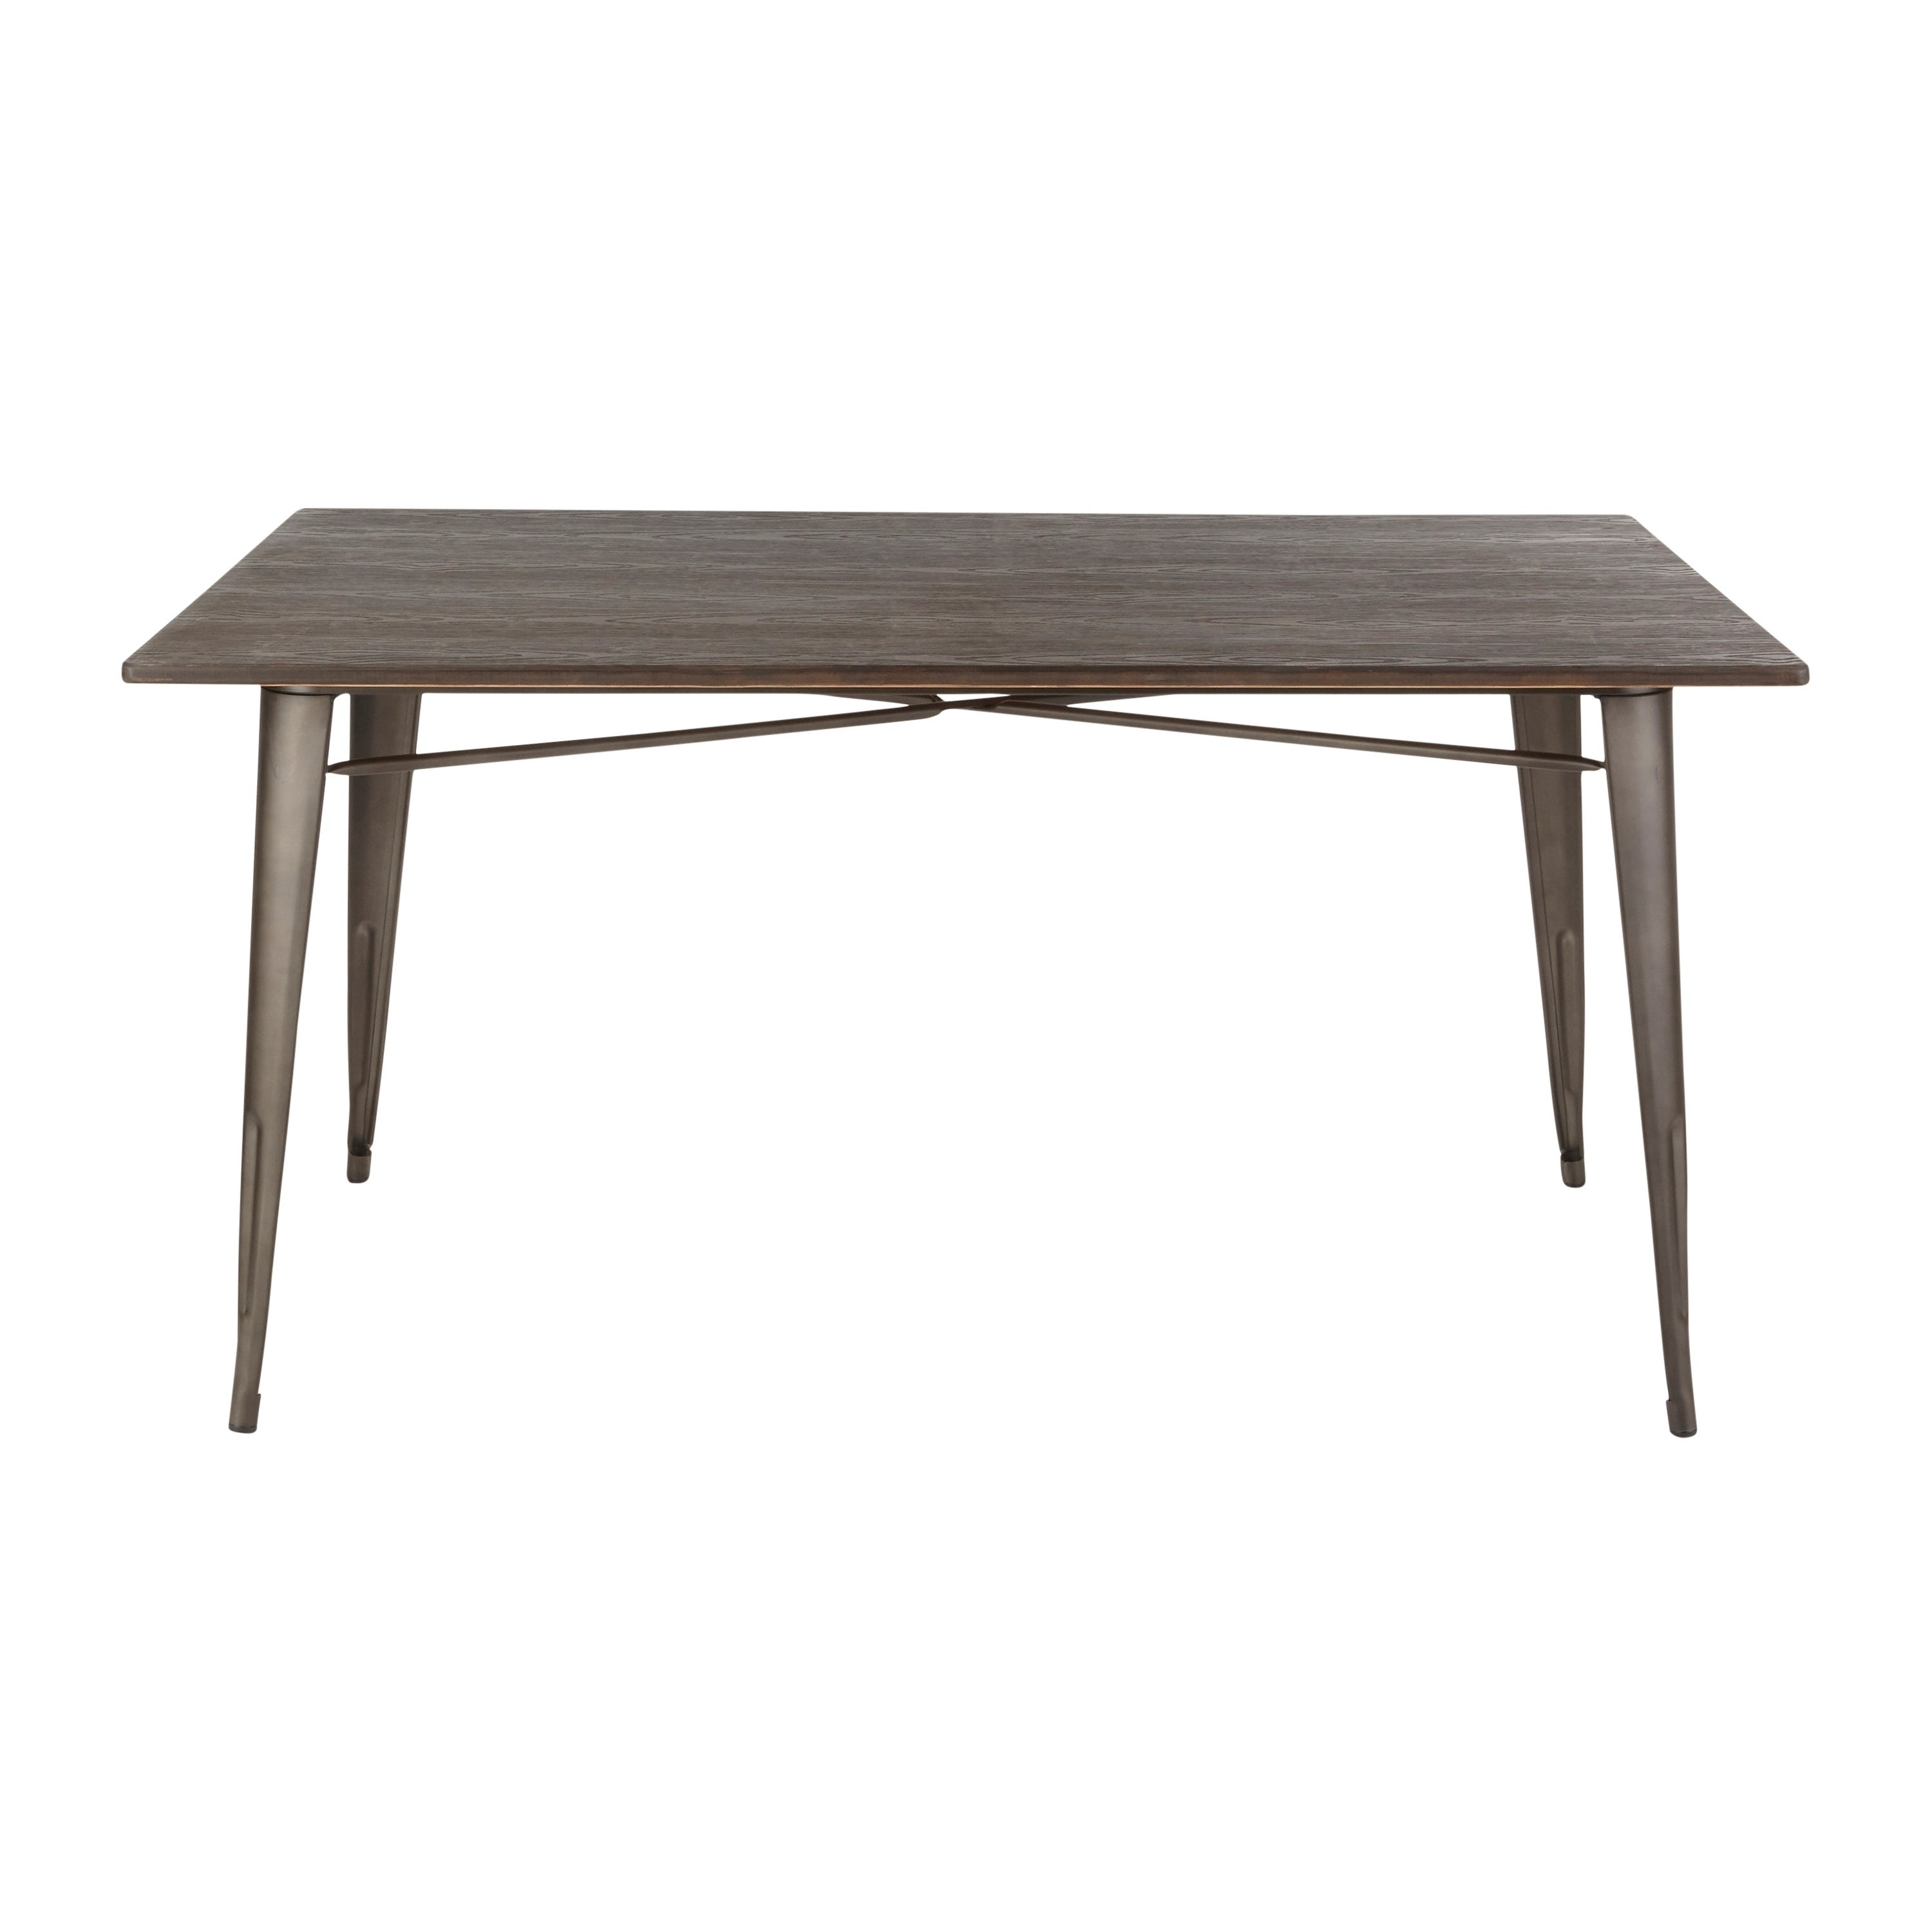 Carbon Loft Boyer Farmhouse 59 Inch Dining Table On Free Shipping Today 19754227